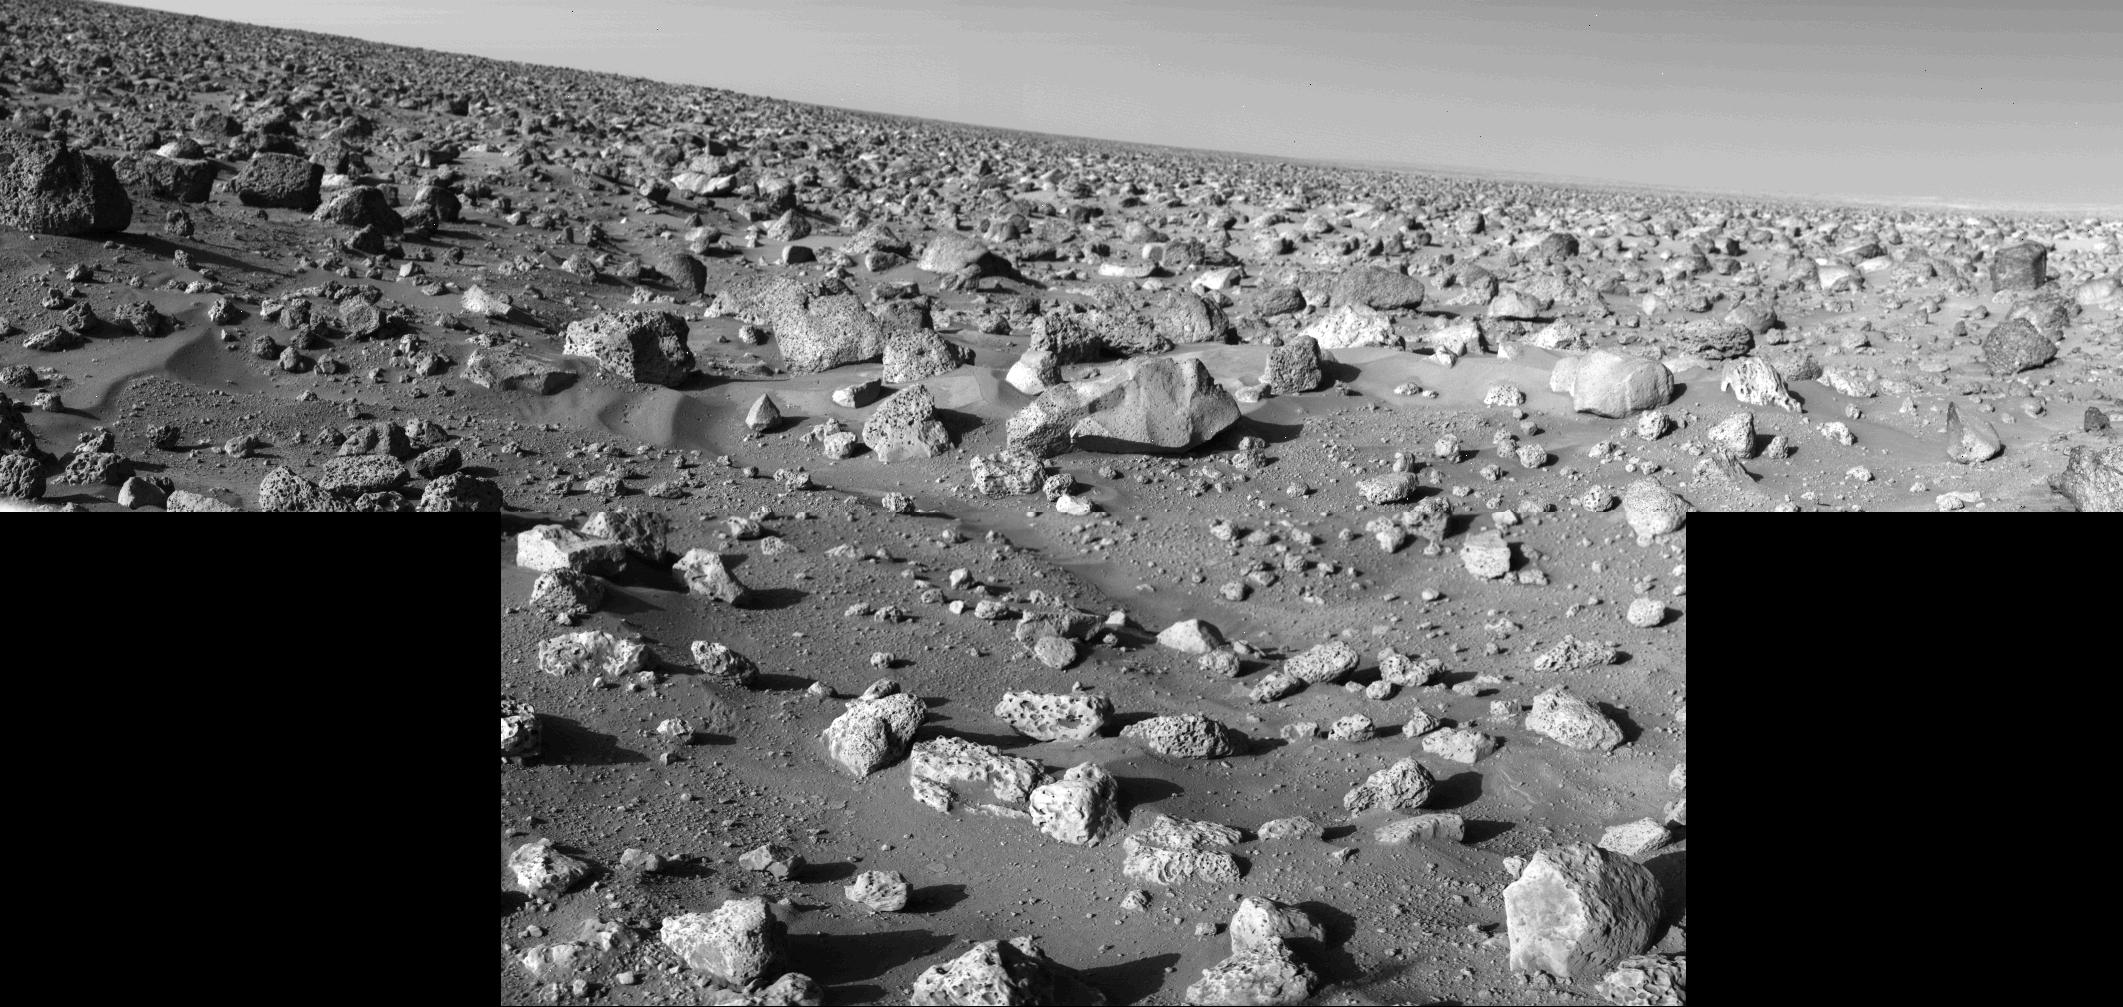 On a clear day on Mars, you can see tens of thousands of rocks.